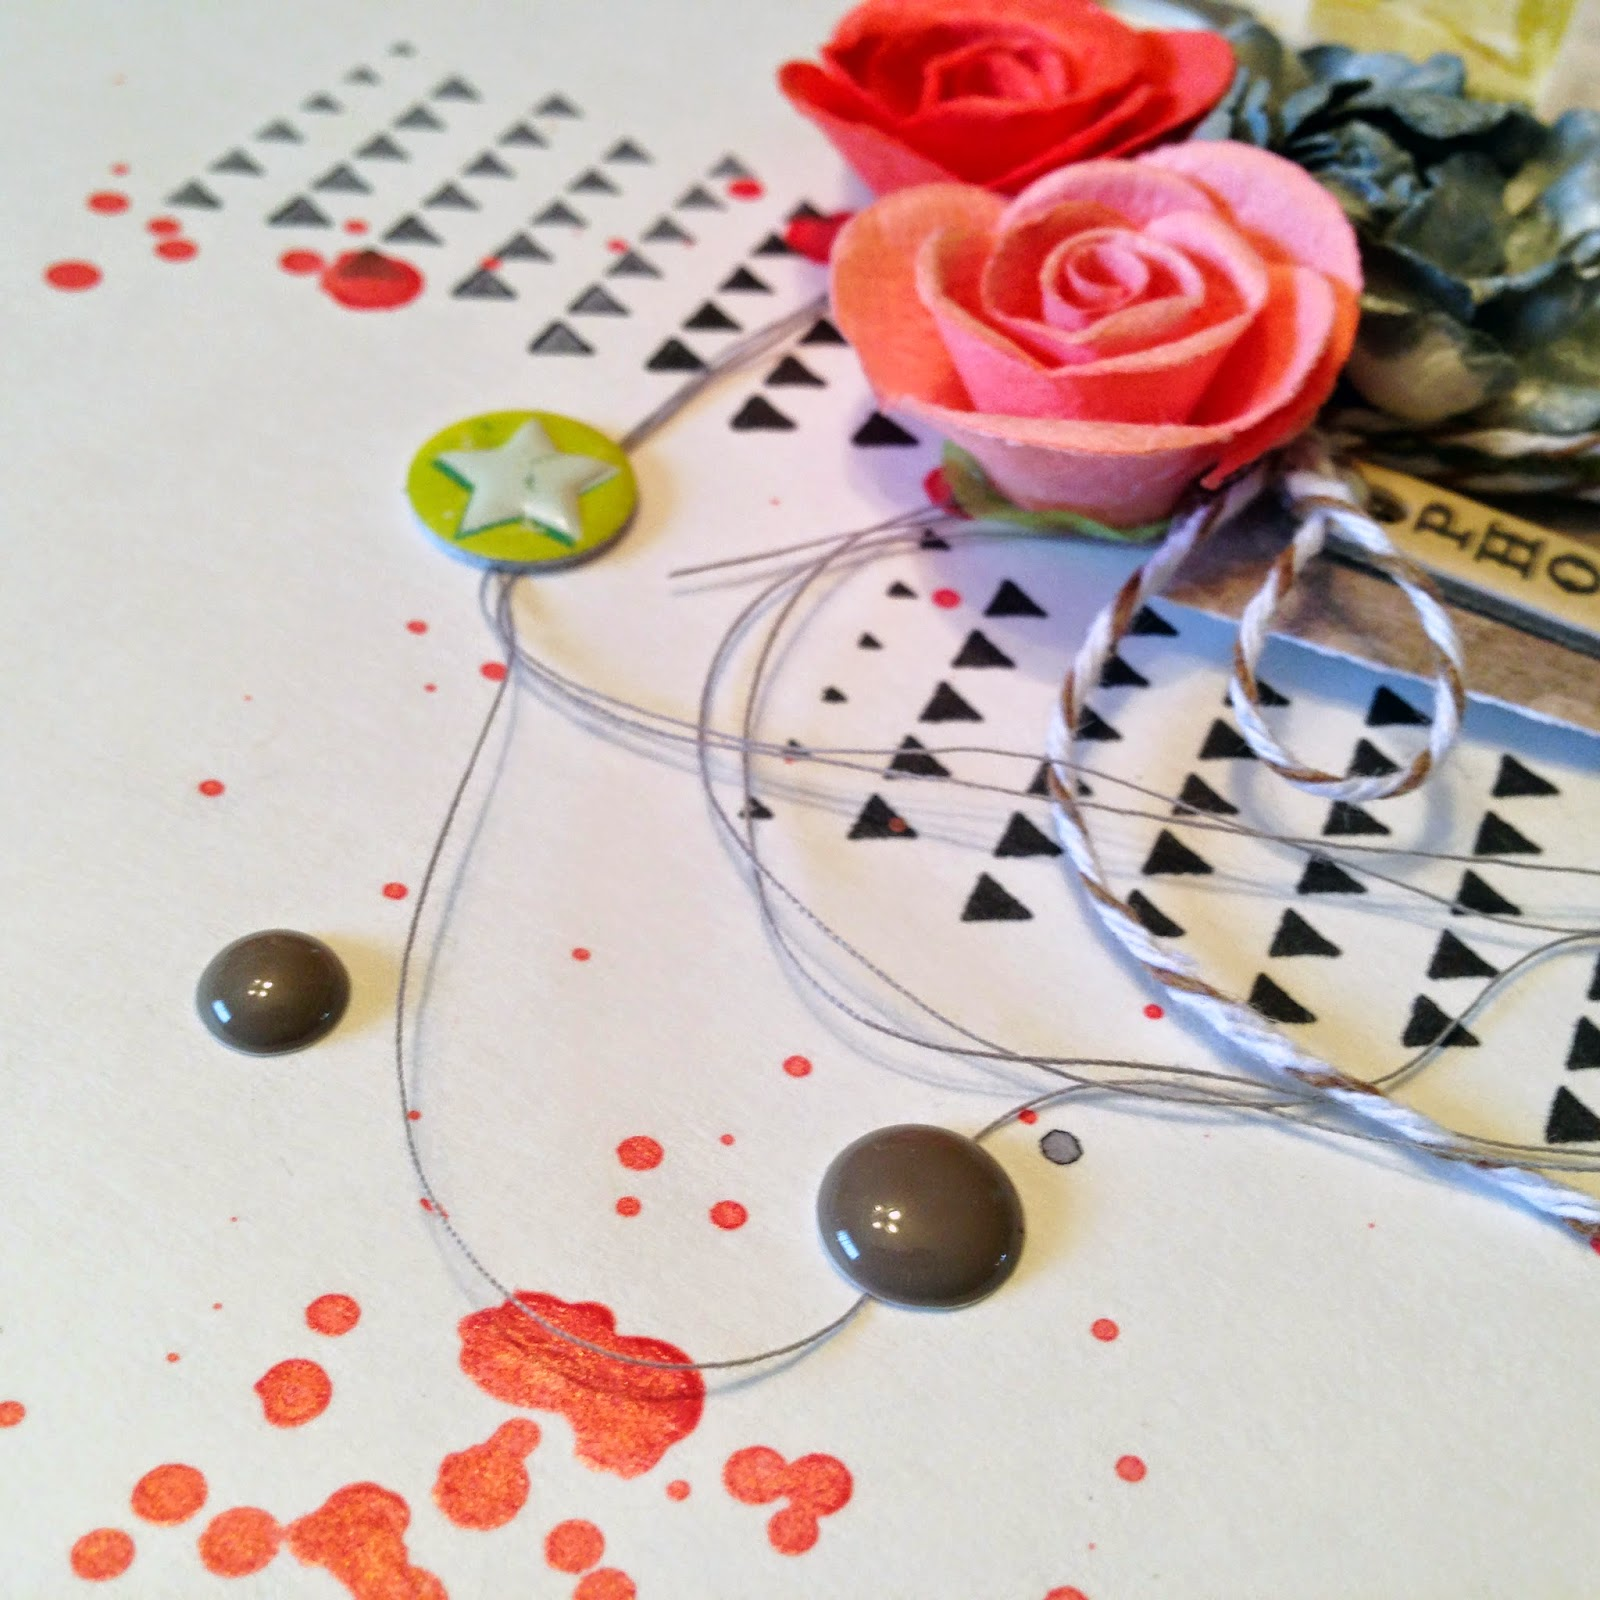 A Li'l Bit Feisty:  A scrapbook layout by Alice Scraps Wonderland | Triangle stamps, enamel dots and thread add texture and interest to the layout.